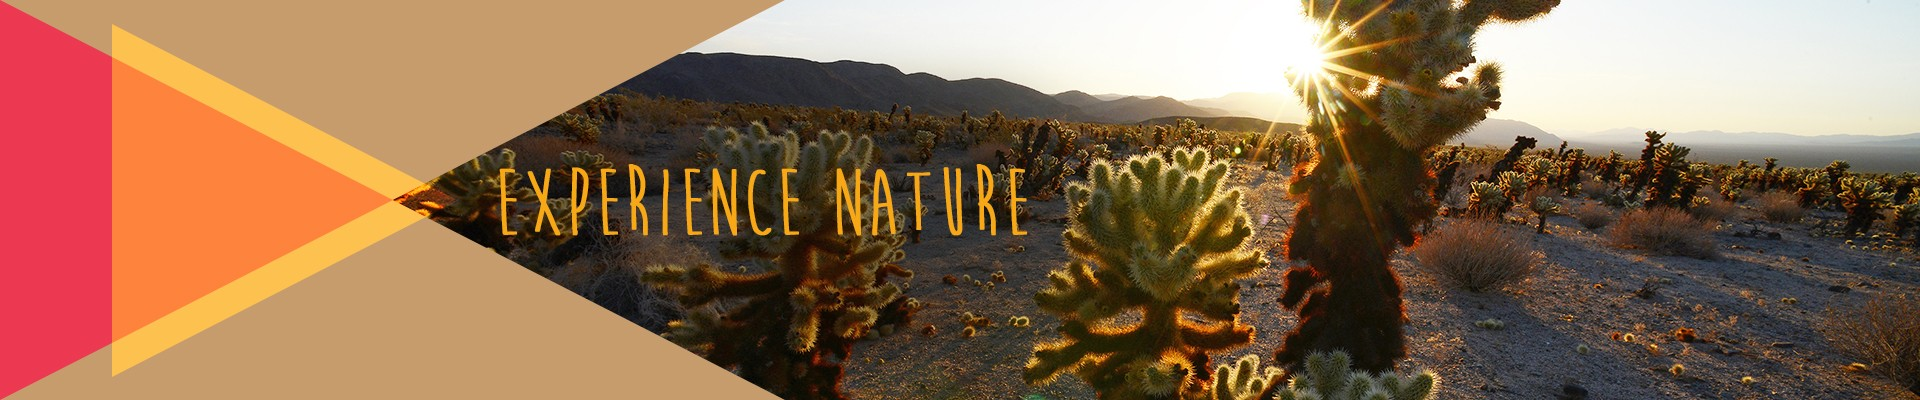 Experience nature - Joshua Tree National Park